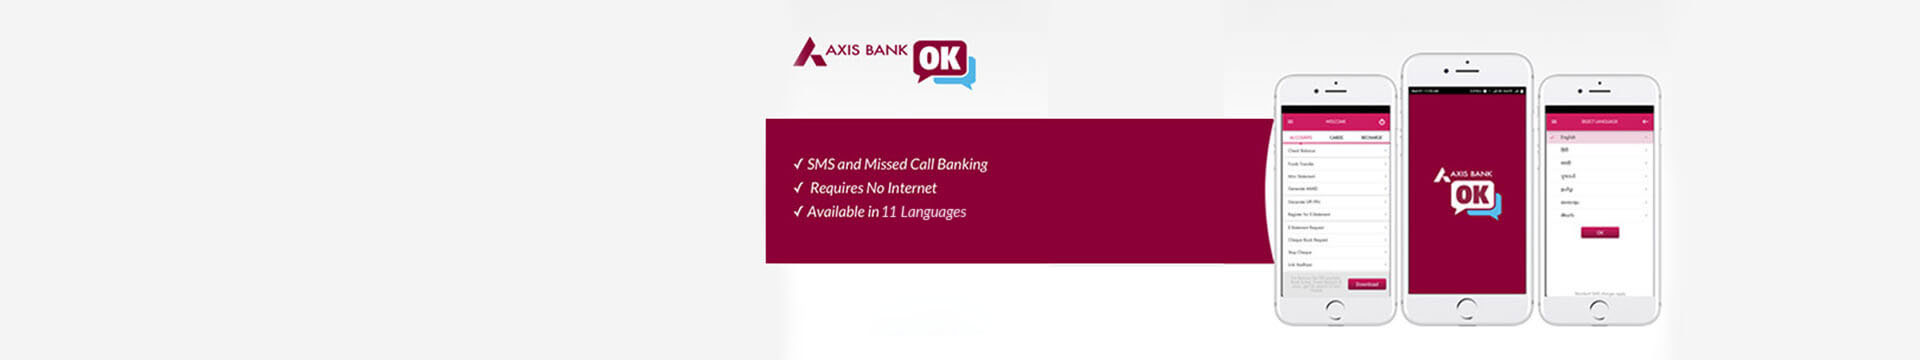 Axis OK Banner